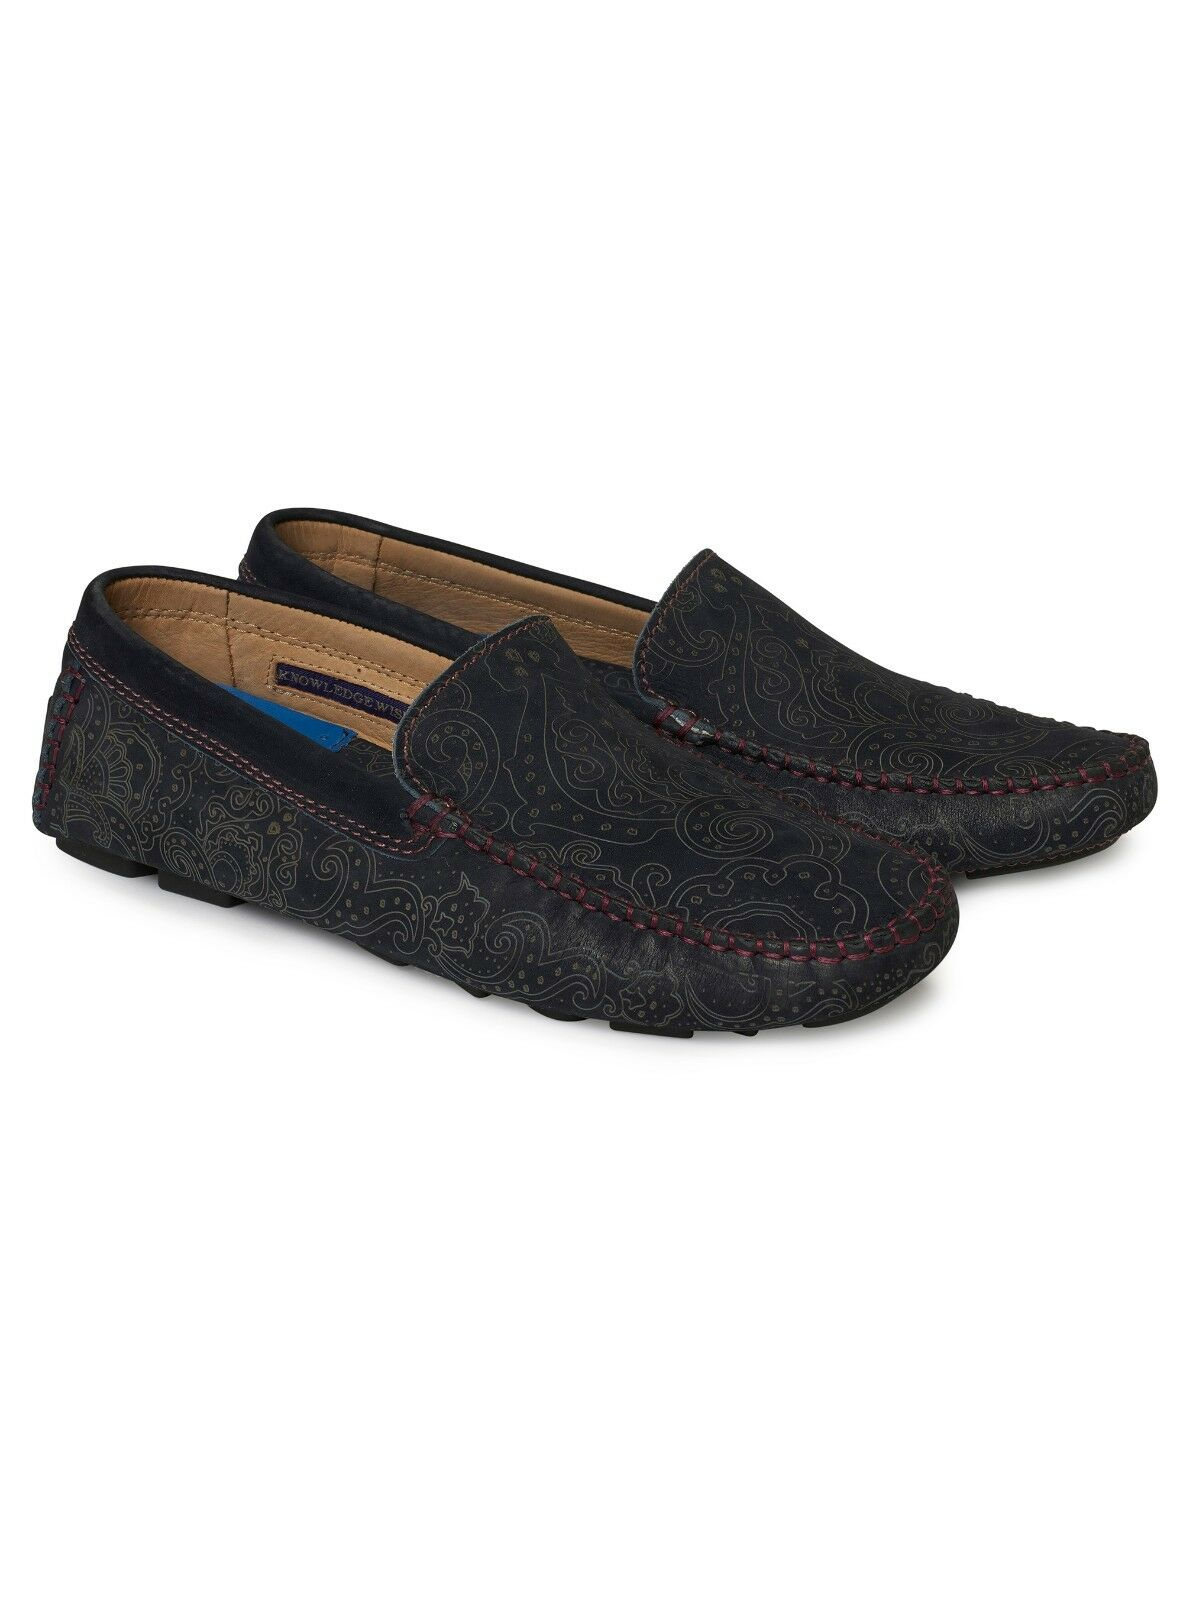 ROBERT GRAHAM MEN'S VERRAZANO LEATHER DRIVING MOCCASIN LOAFER  NWT